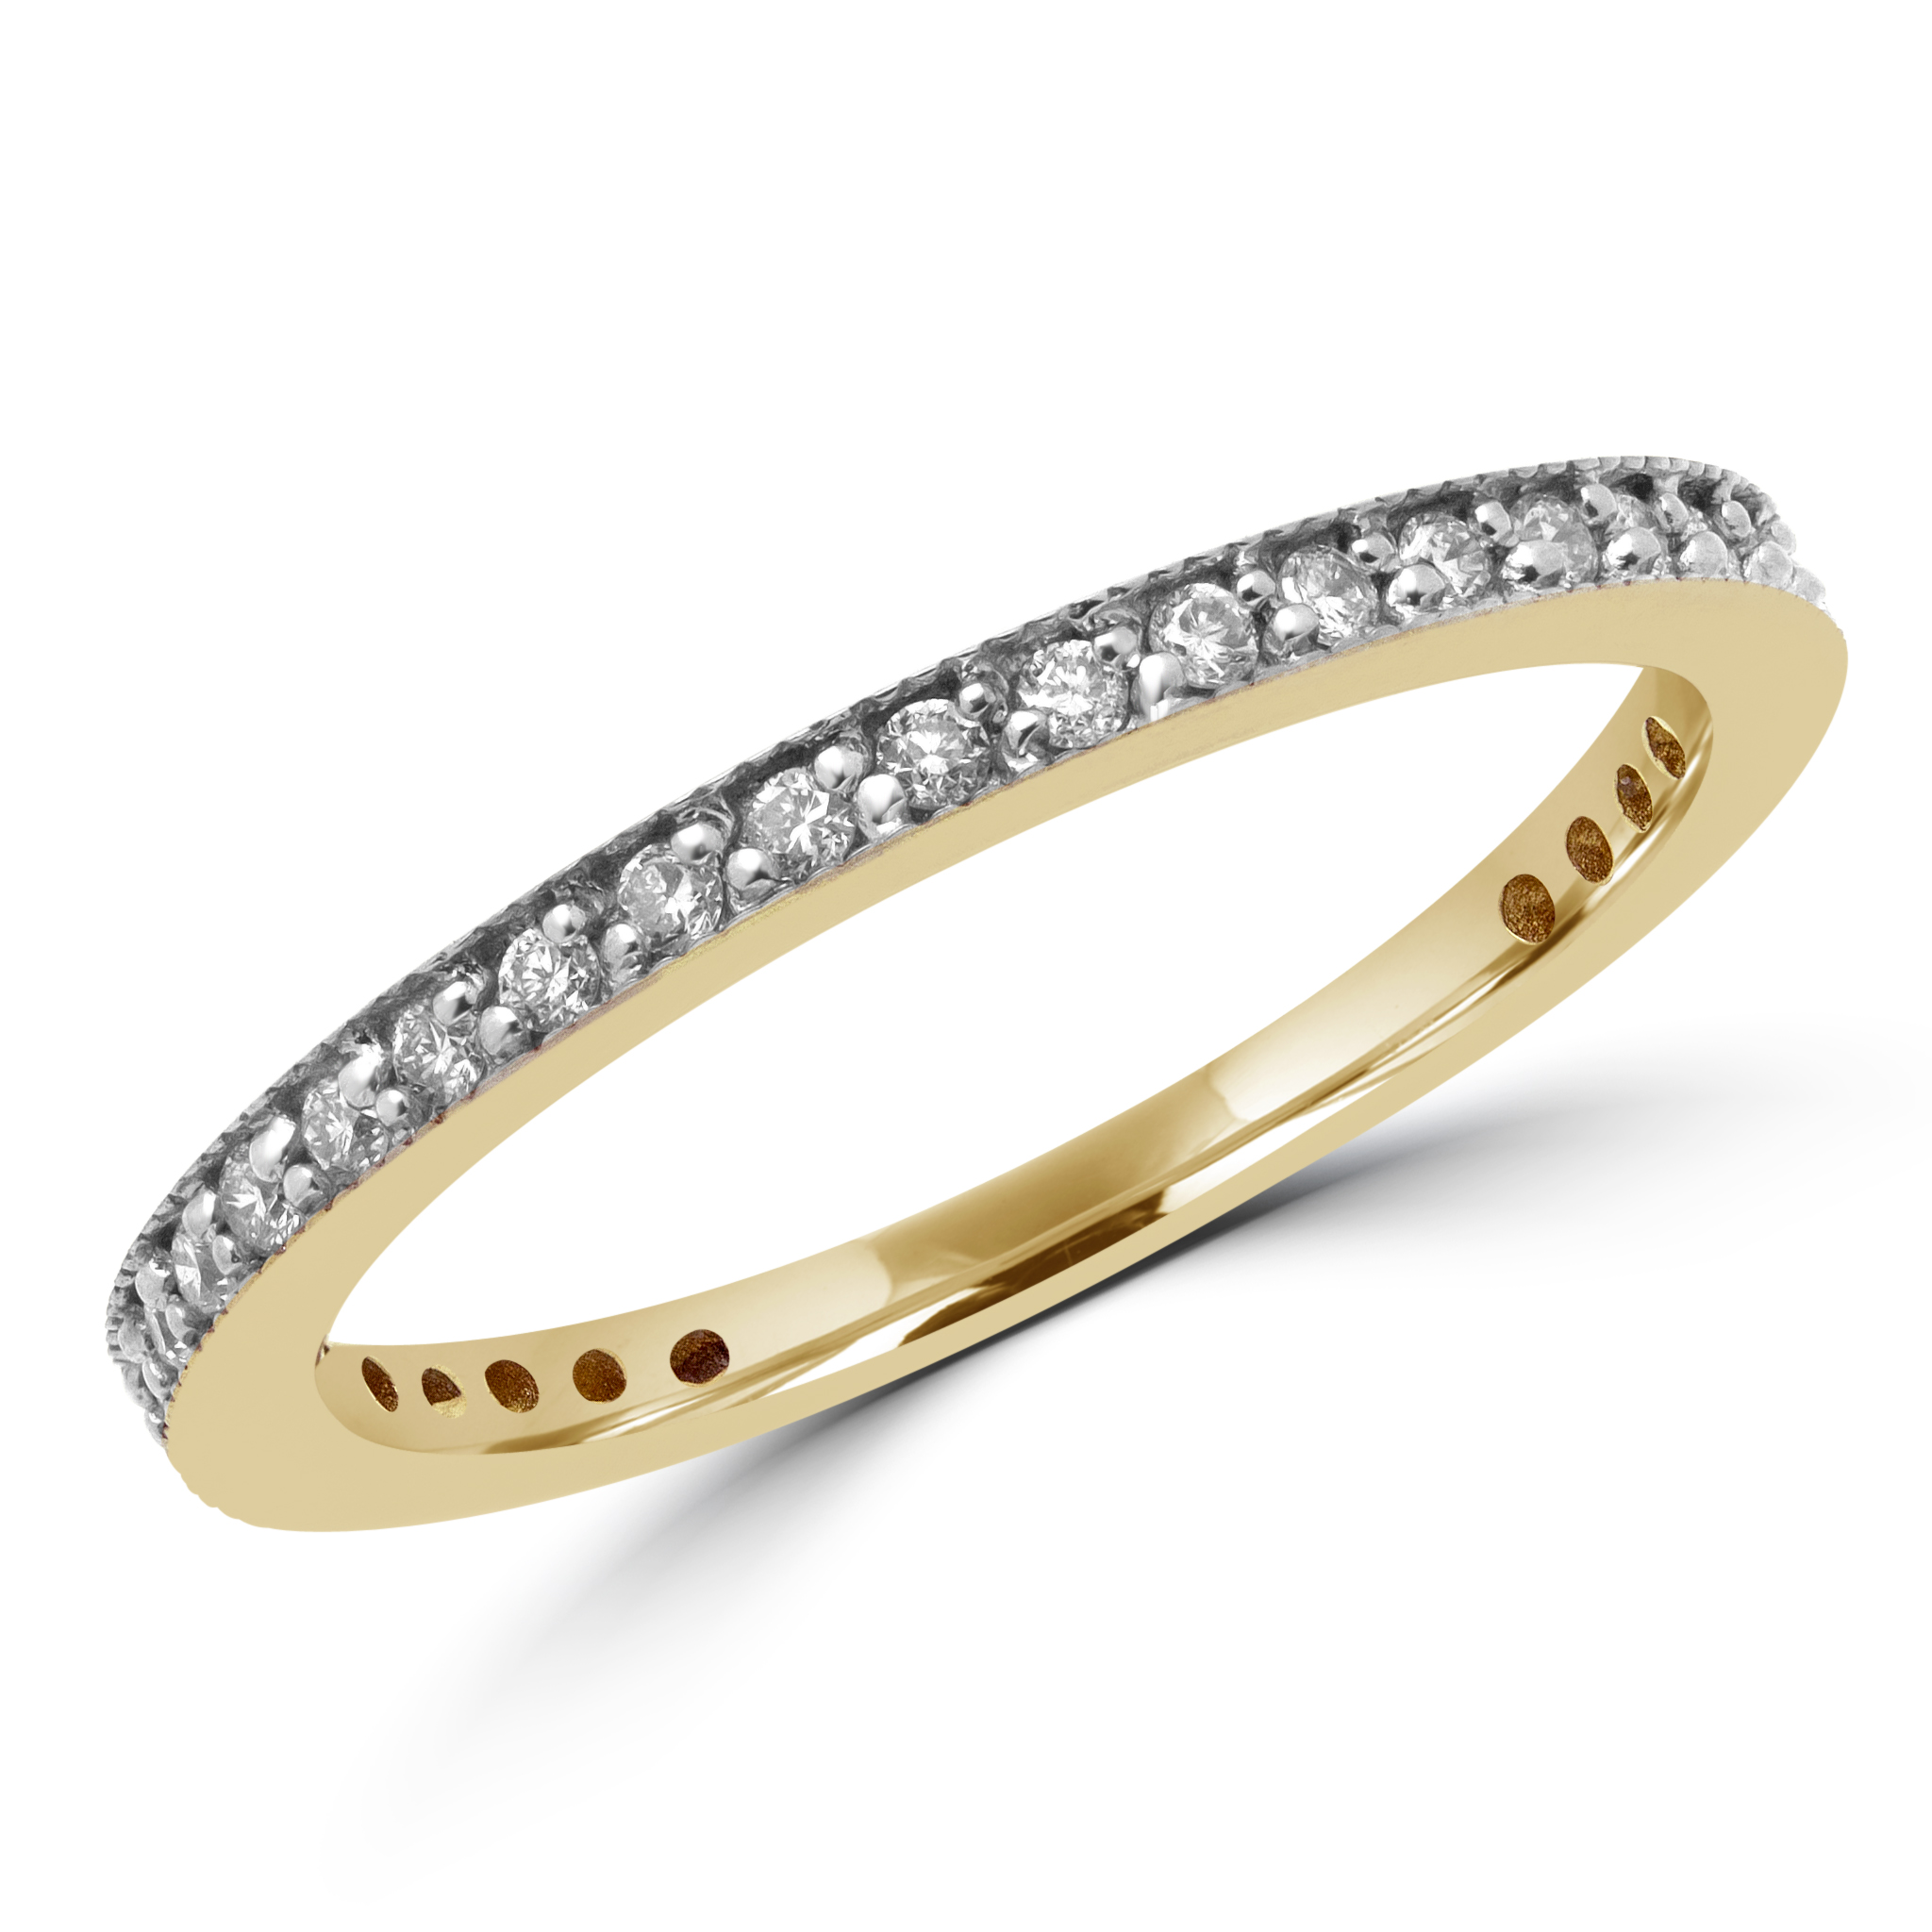 Eternity diamond wedding band 0.33 (ctw) in 10k yellow gold